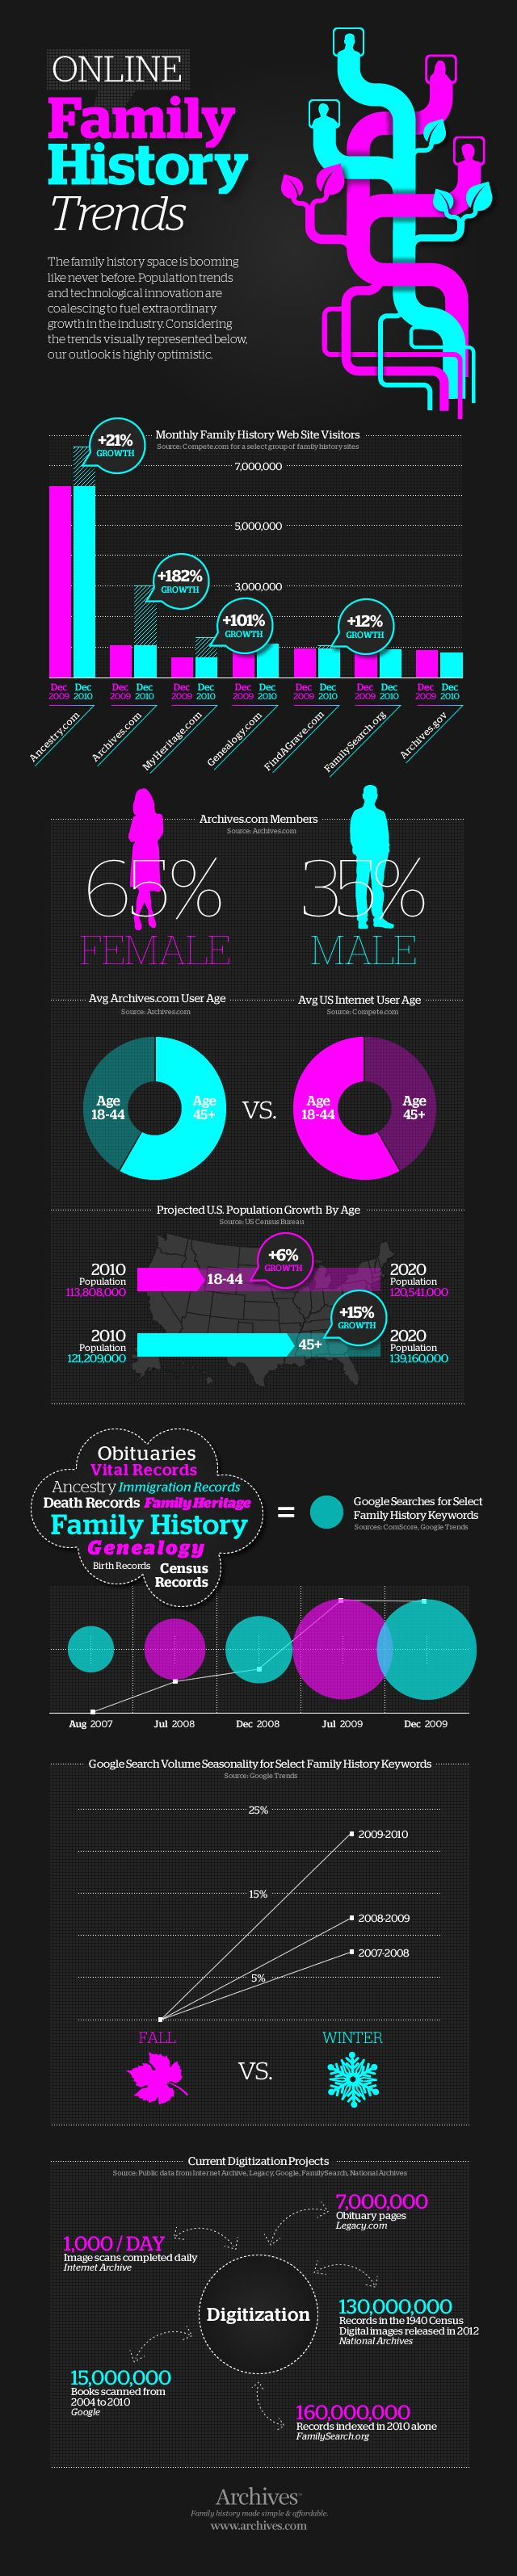 Online Family History Industry Trends